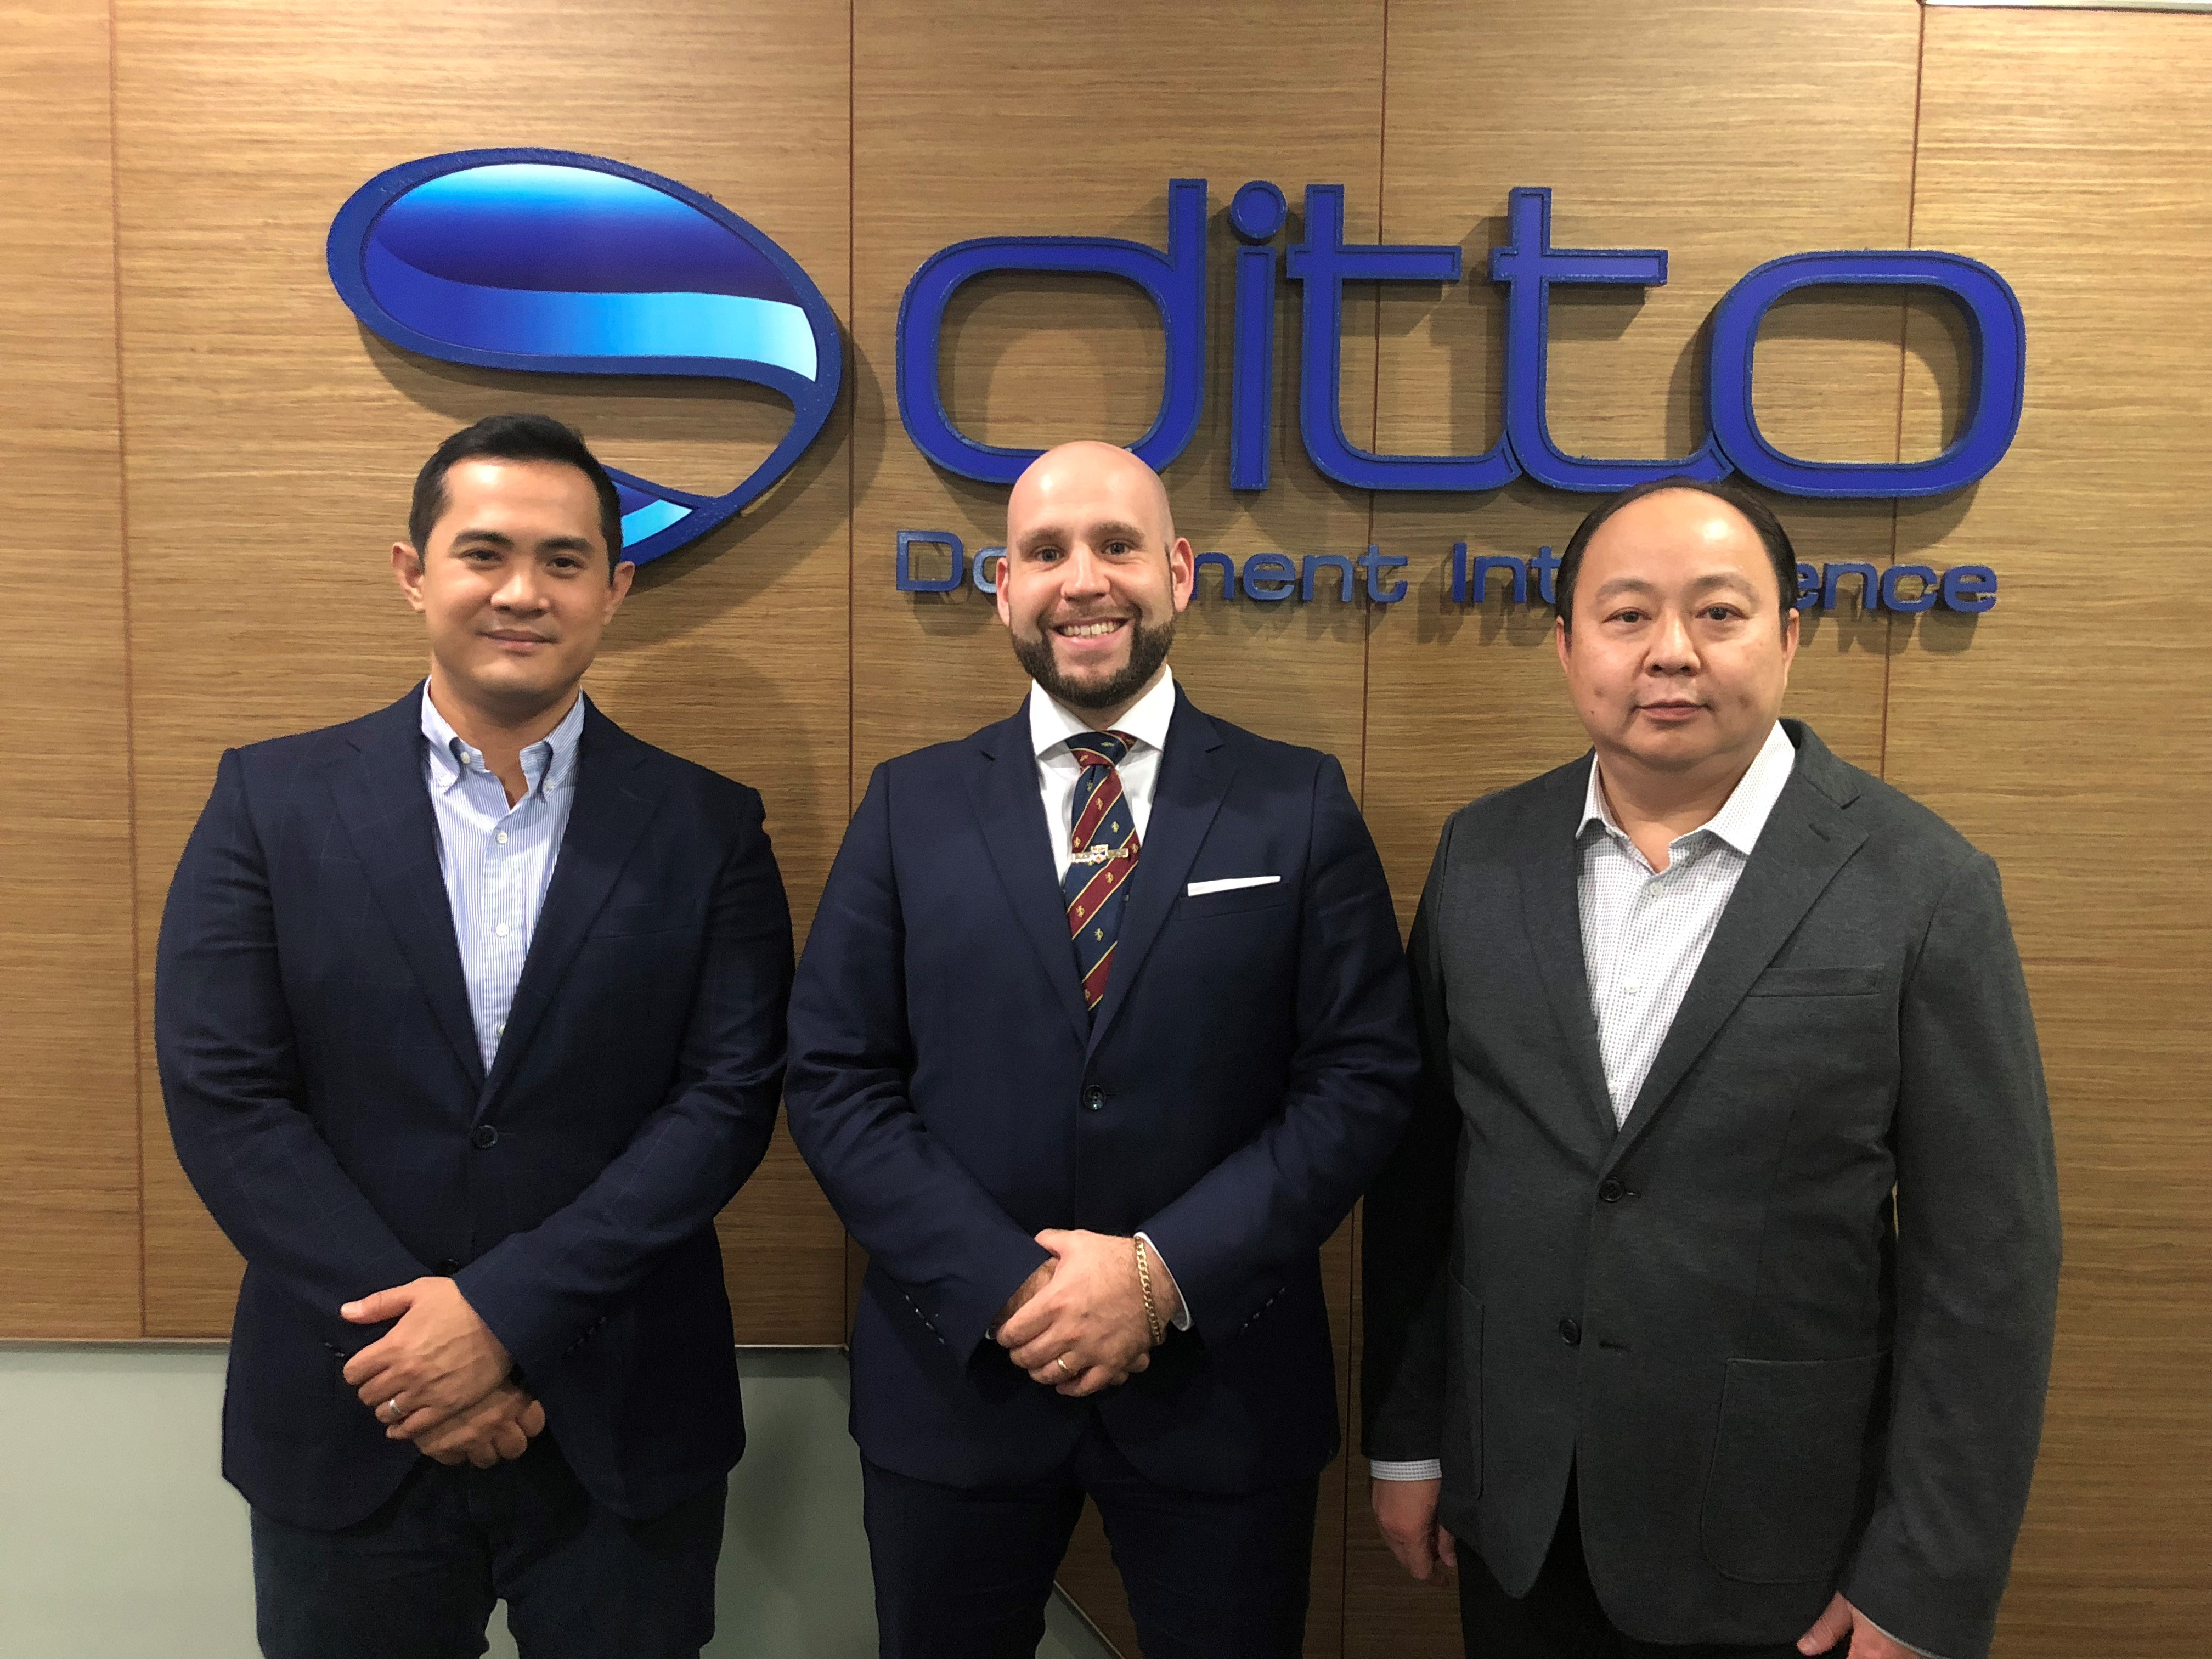 AMAGNO Extends Digital Workplace Experience to Companies in Southeast Asia with DITTO Thailand Partnership